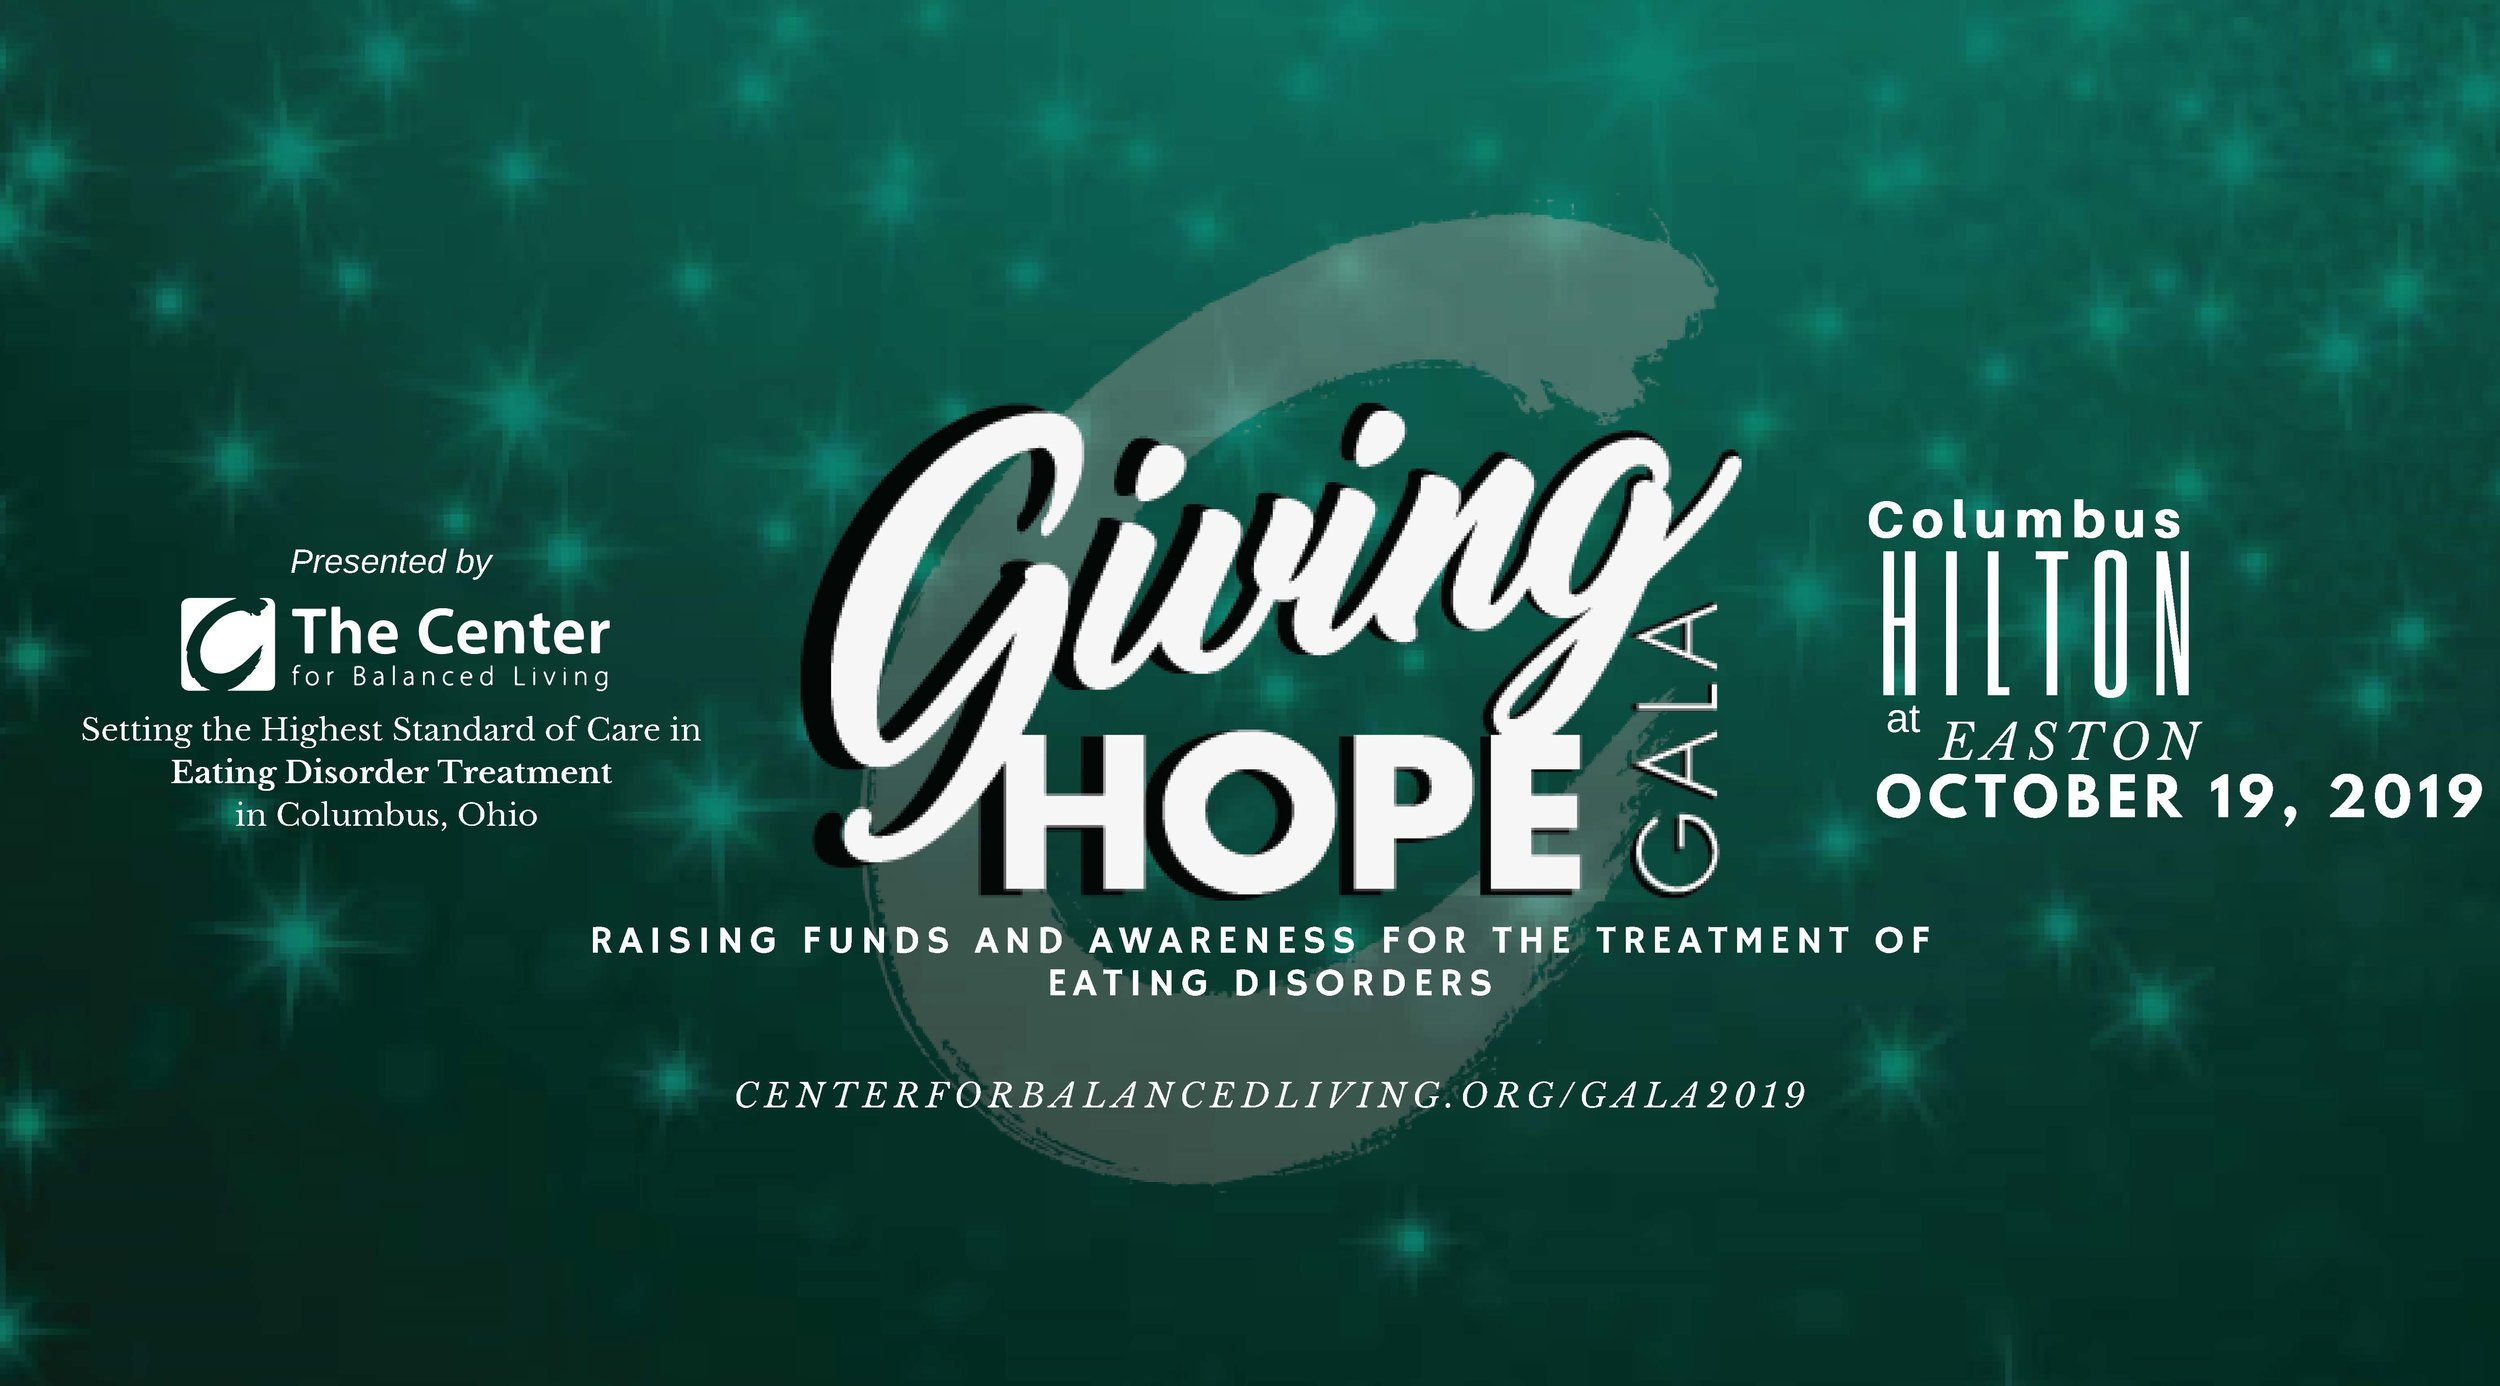 Save the Date for our 3rd Annual Giving Hope Gala! - For questions regarding the Giving Hope Gala auction item donations, sponsorships, or tickets, please contact Jill Fondriest at jill.fondriest@thecenterforbalancedliving.org